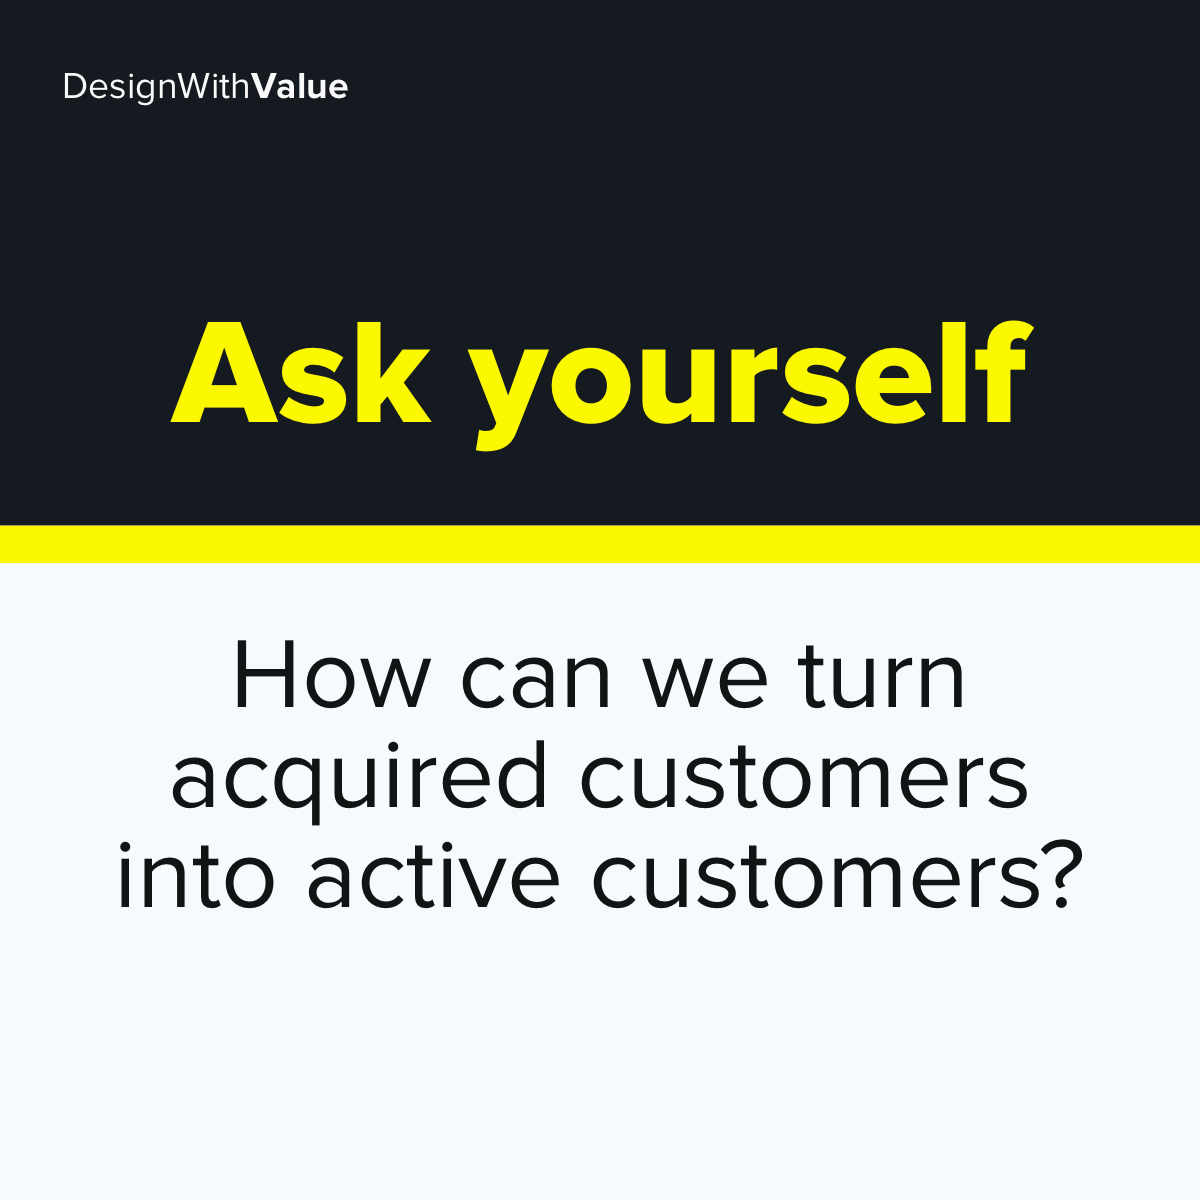 Ask yourself: How can we turn acquired customers into active customers?